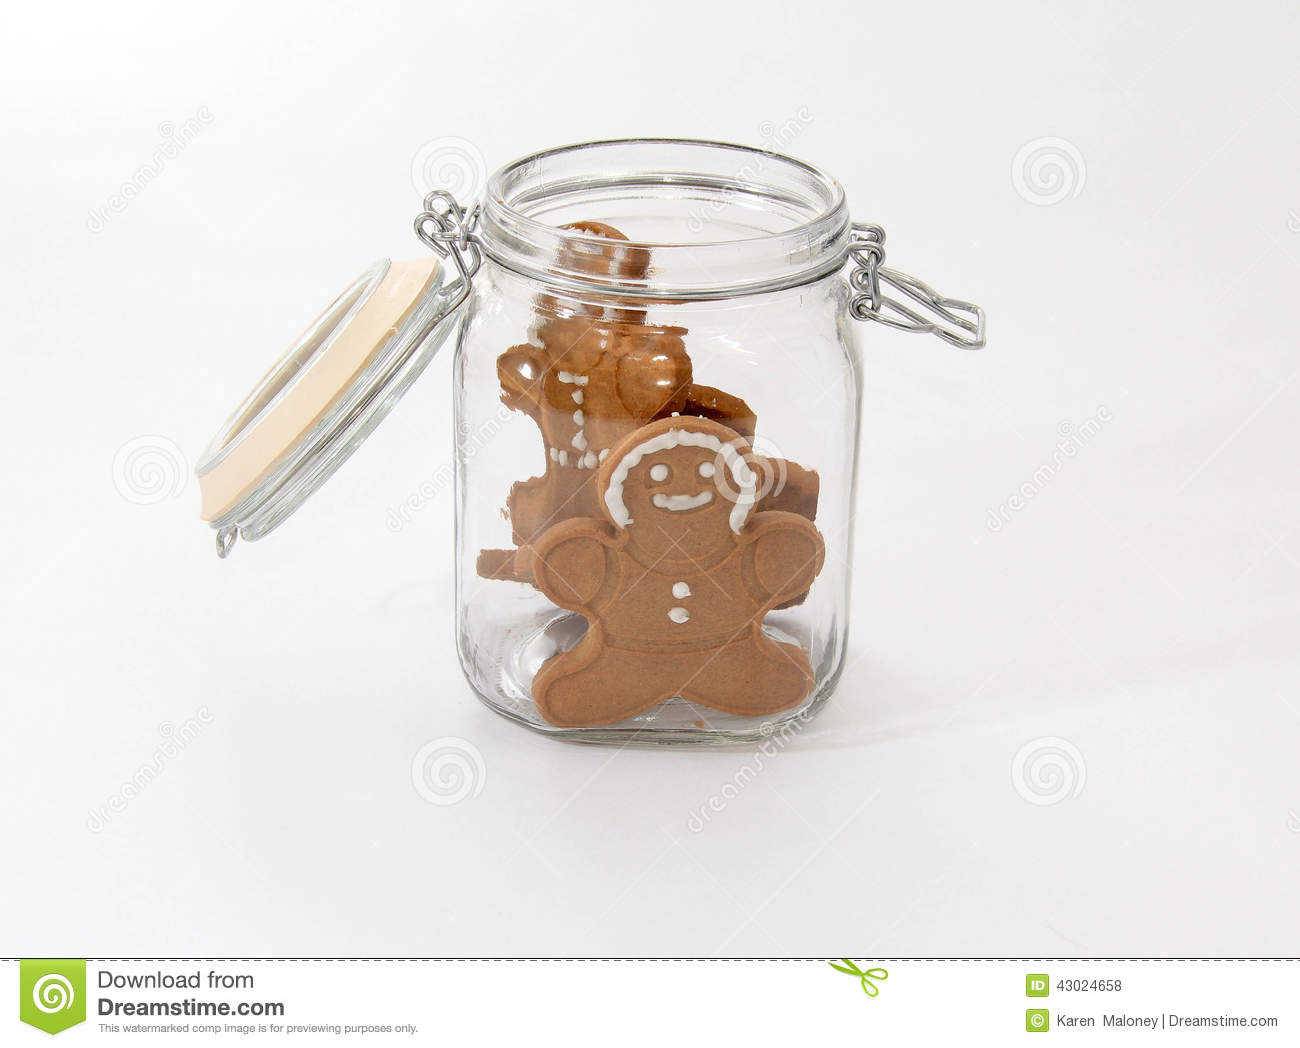 Decorative Cookie Containers Gingerbread Men And Jar Stock Photo Image 43024658